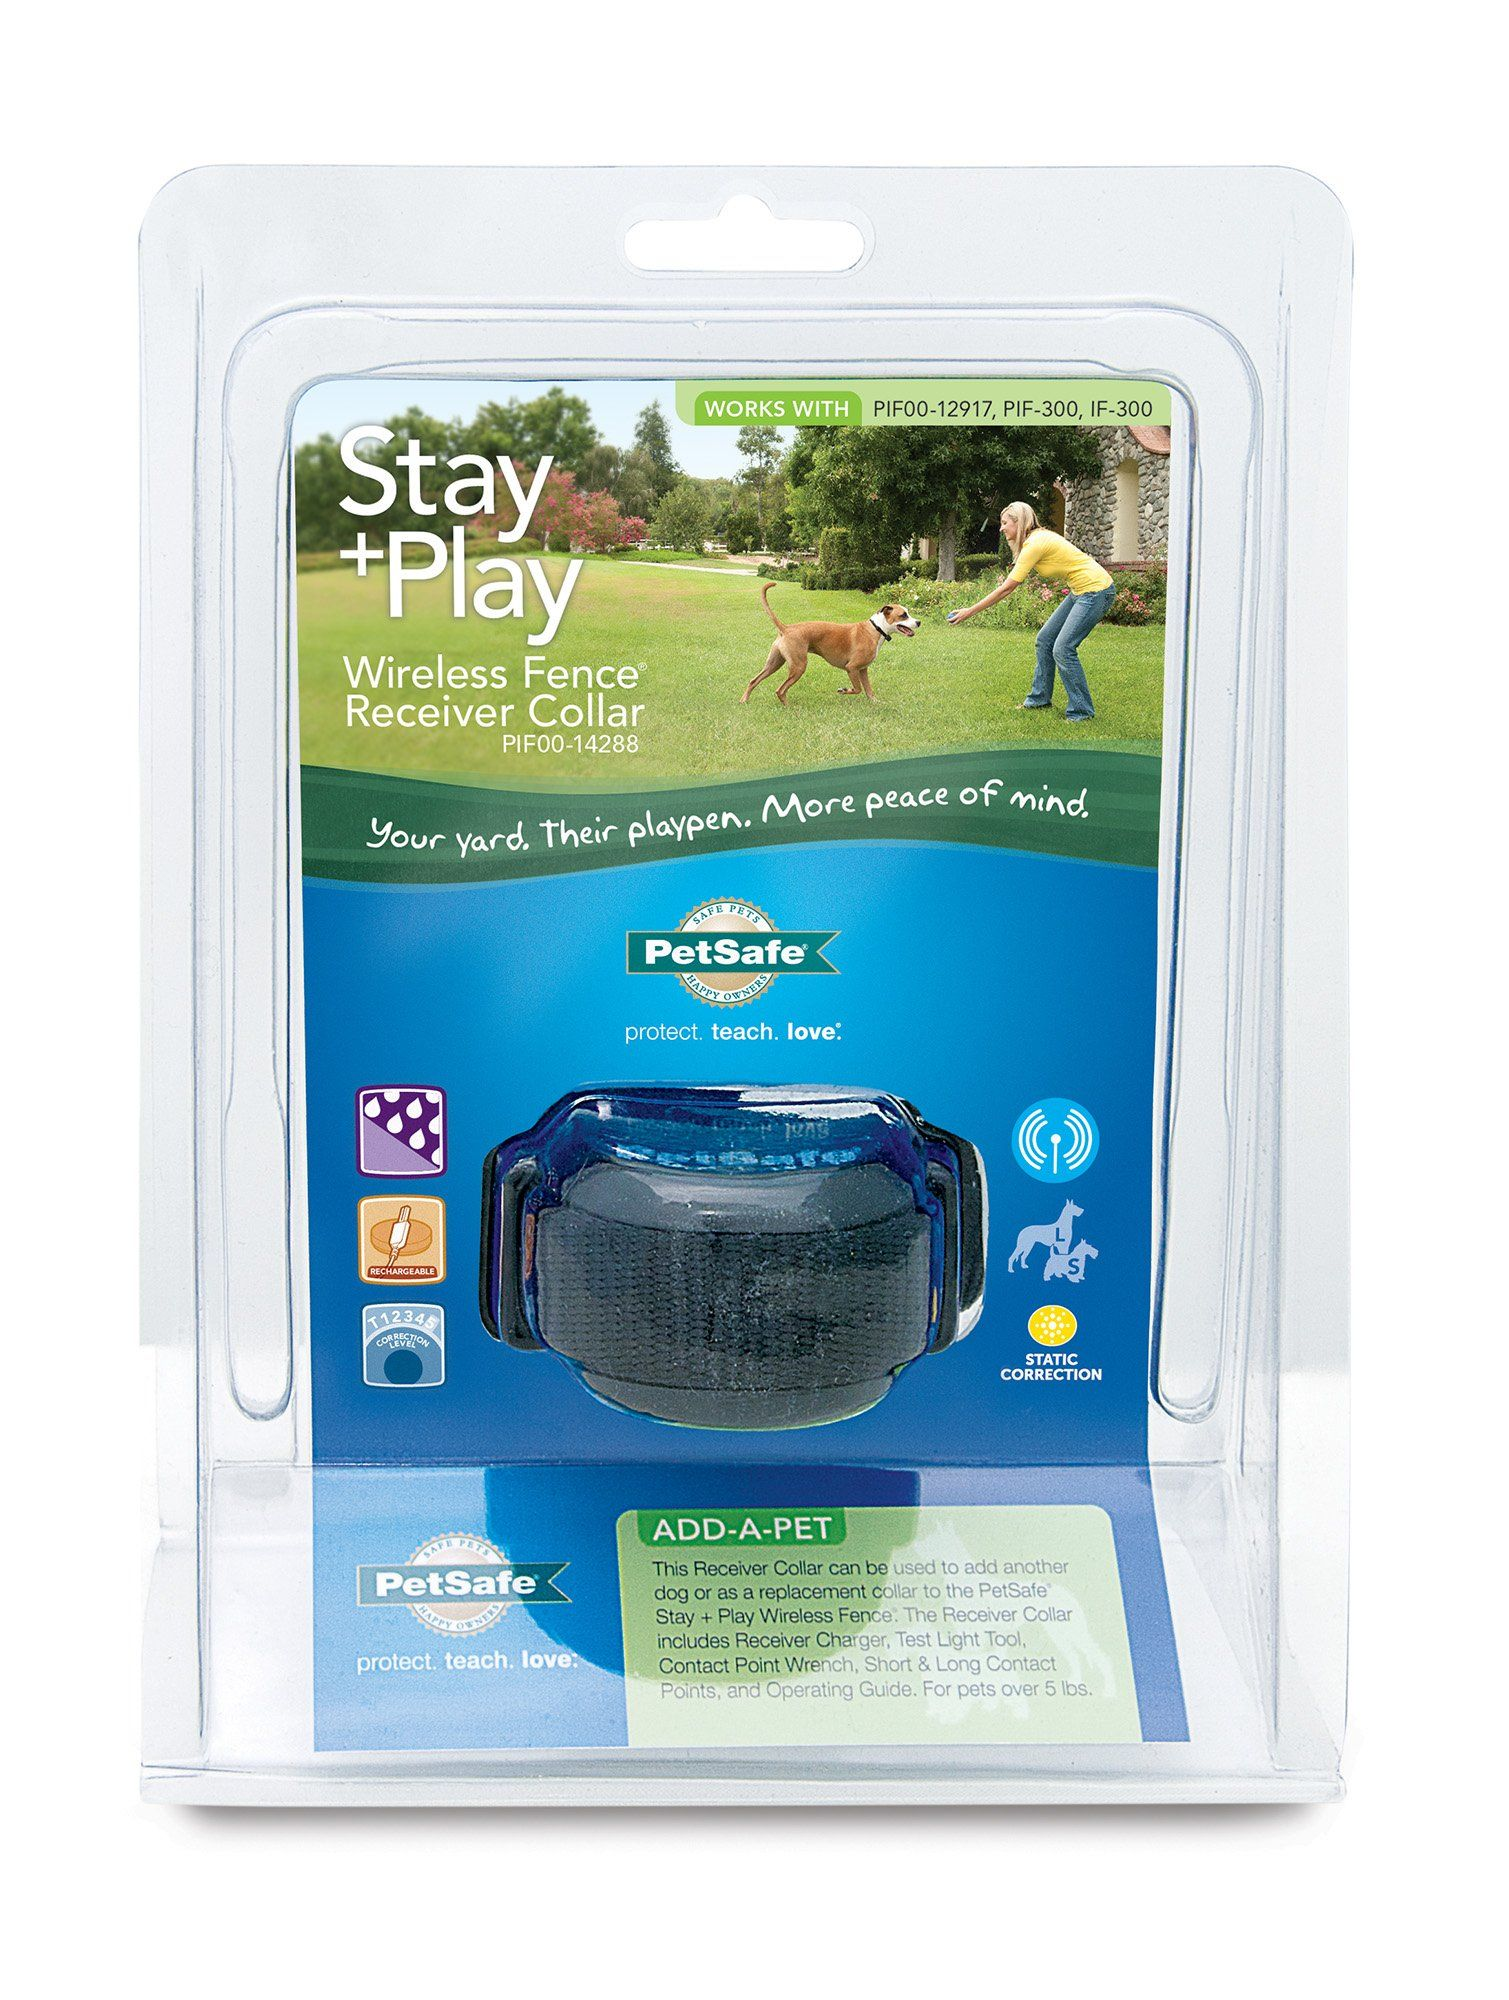 Petsafe Stay Play Wireless Fence Covers Up To 3 4 Acre Ad